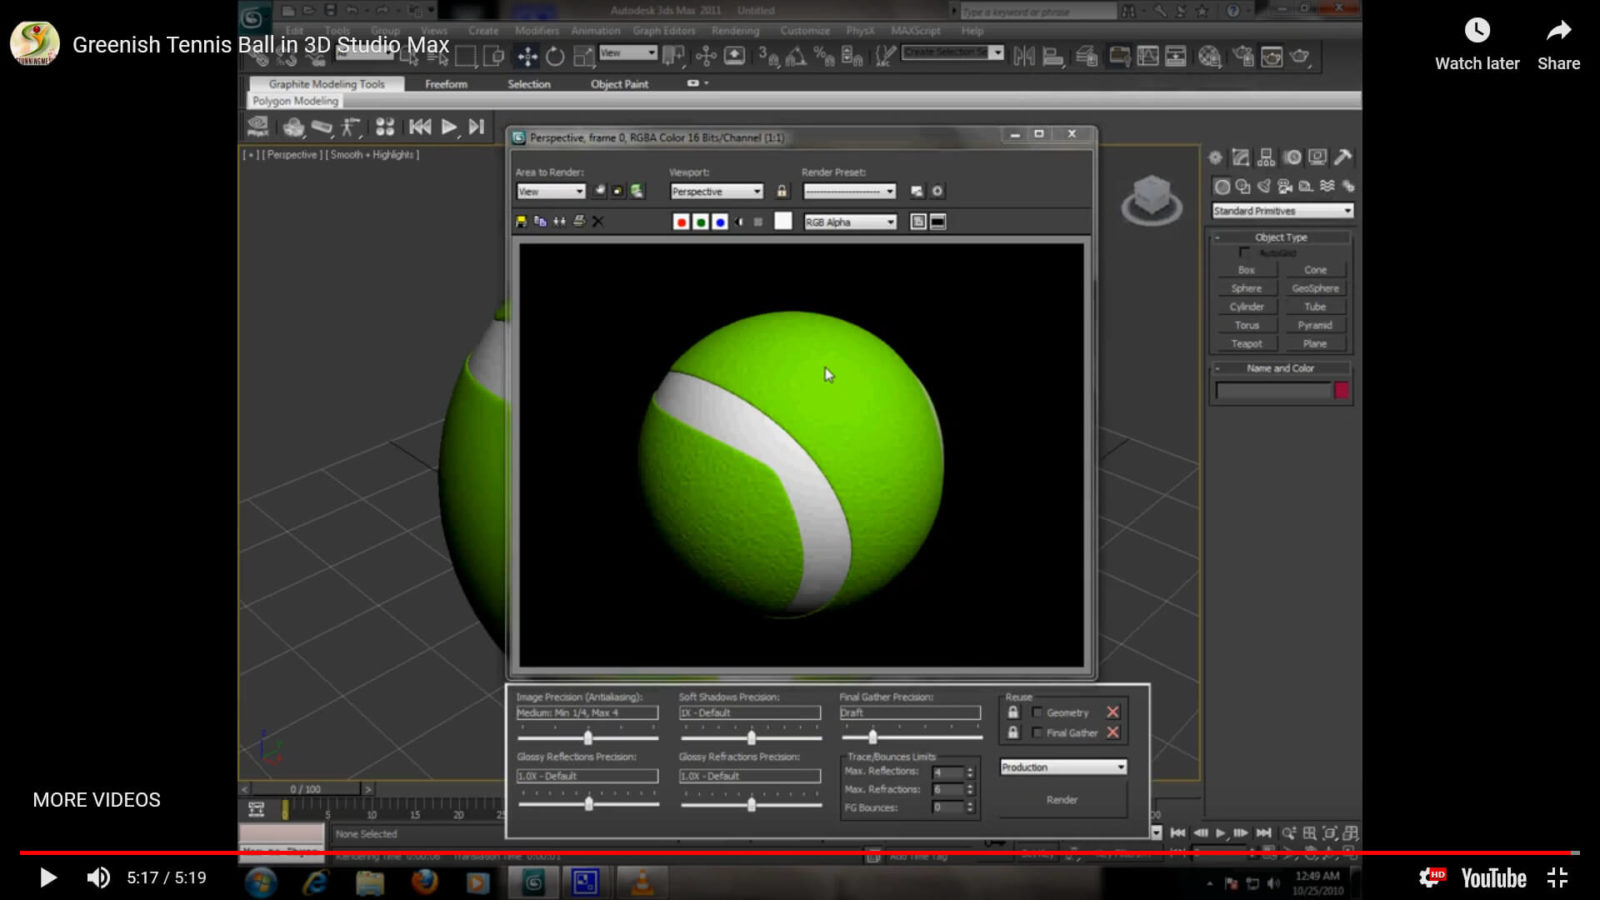 Tennis Ball in 3D Studio Max Tutorial